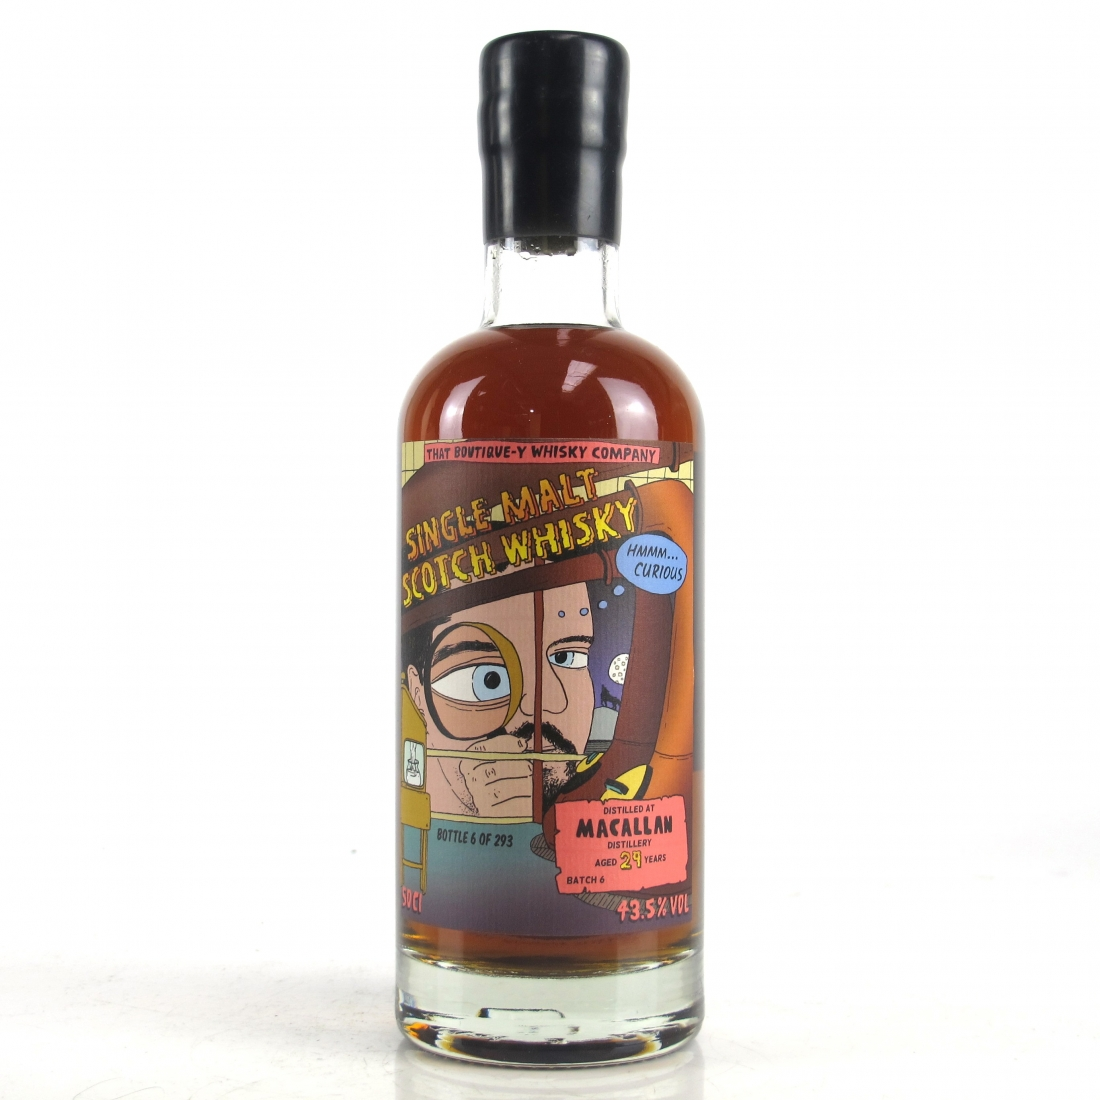 Macallan That Boutique-y Whisky Company 29 Year Old Batch #6